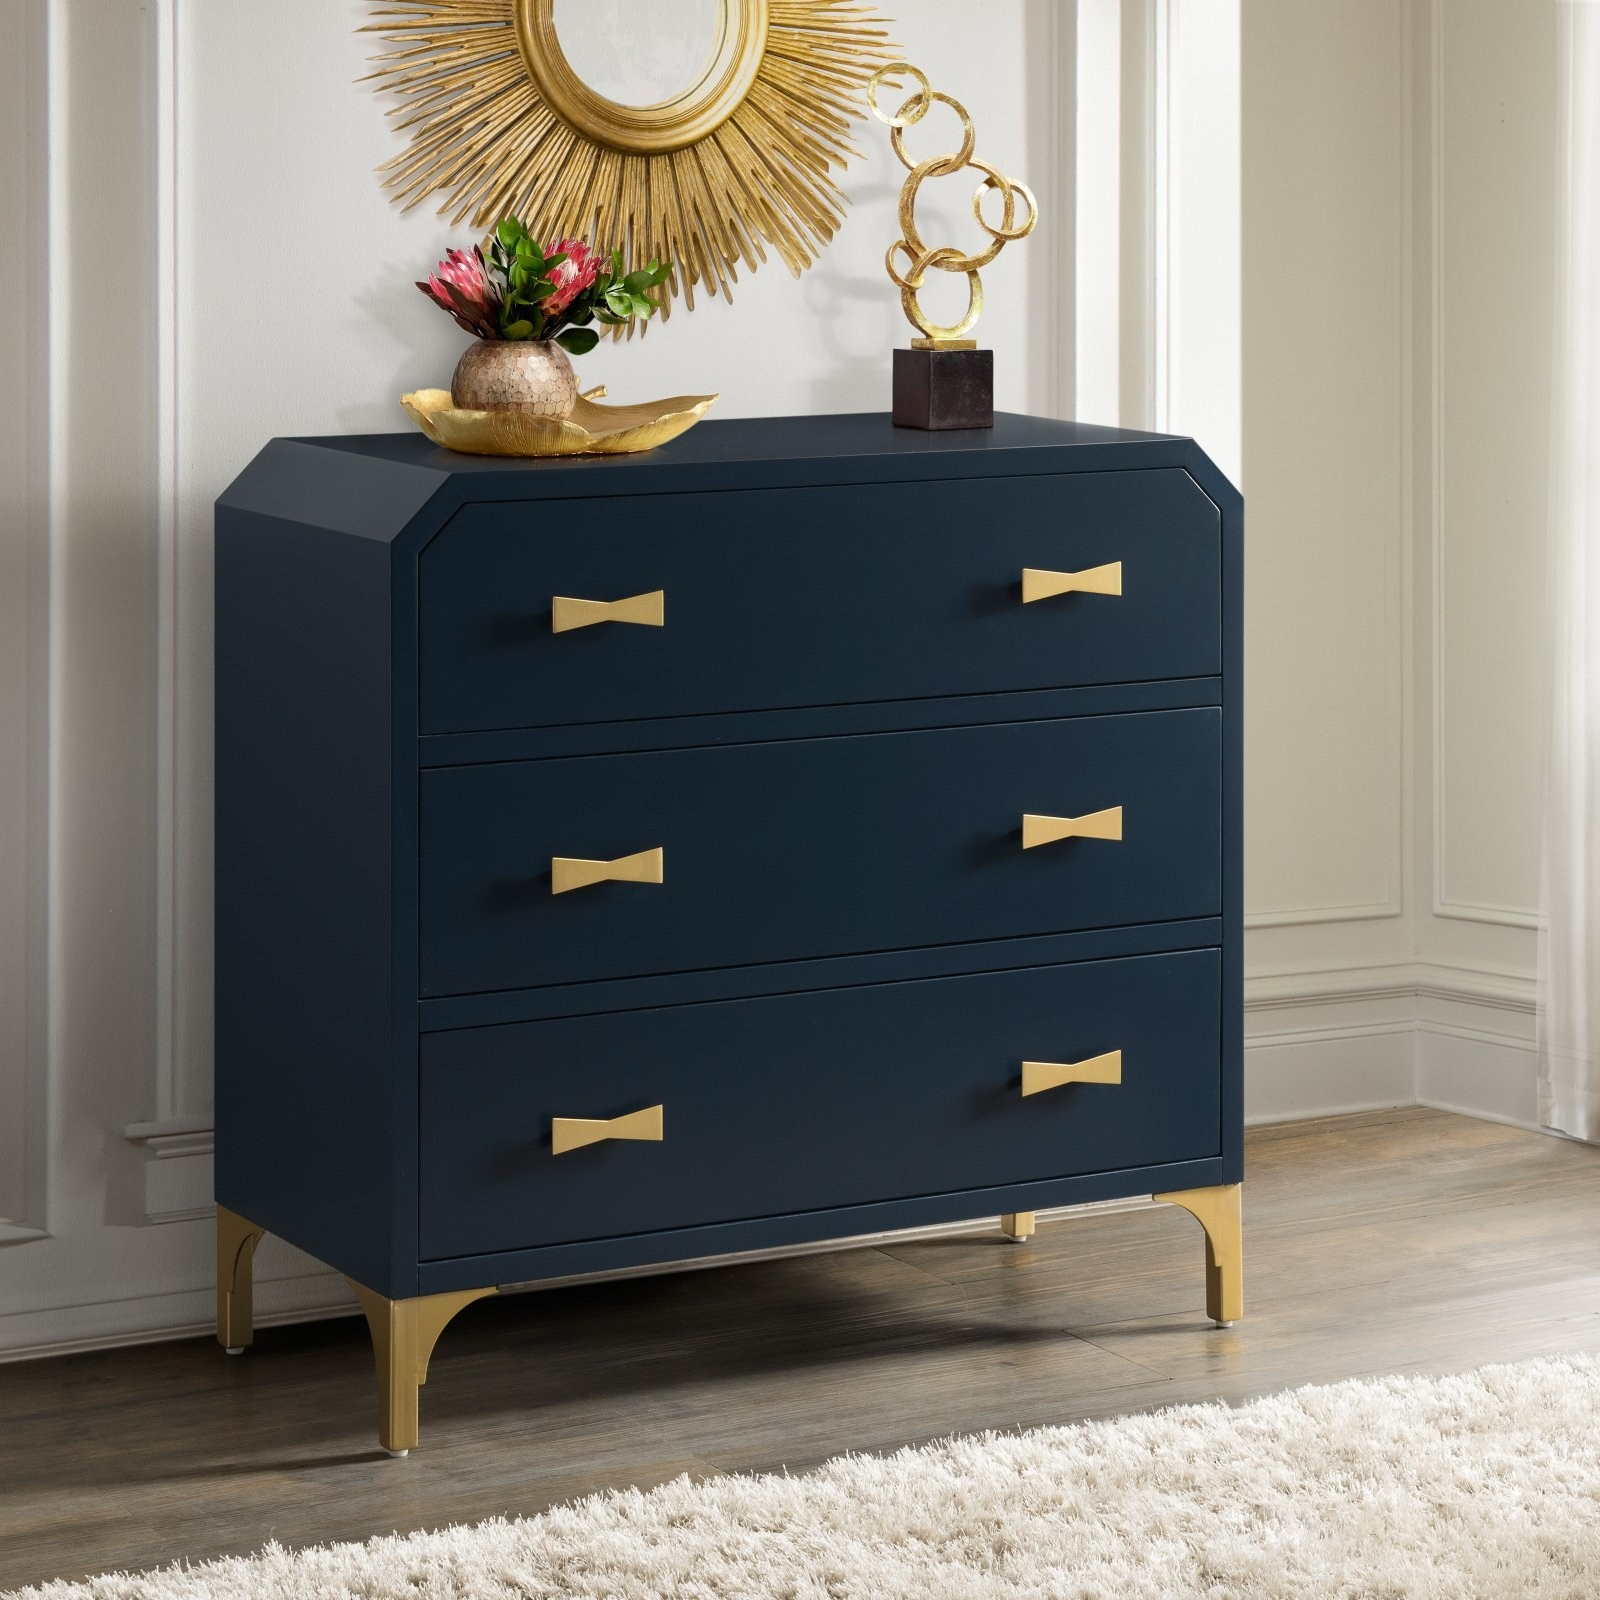 """Promising review: """"SO happy with this purchase!! This dresser is so pretty! It took some time to get it out of the box but it was completely put together except for the legs. The color is gorgeous!"""" —JillinTexasPrice: $298.70"""